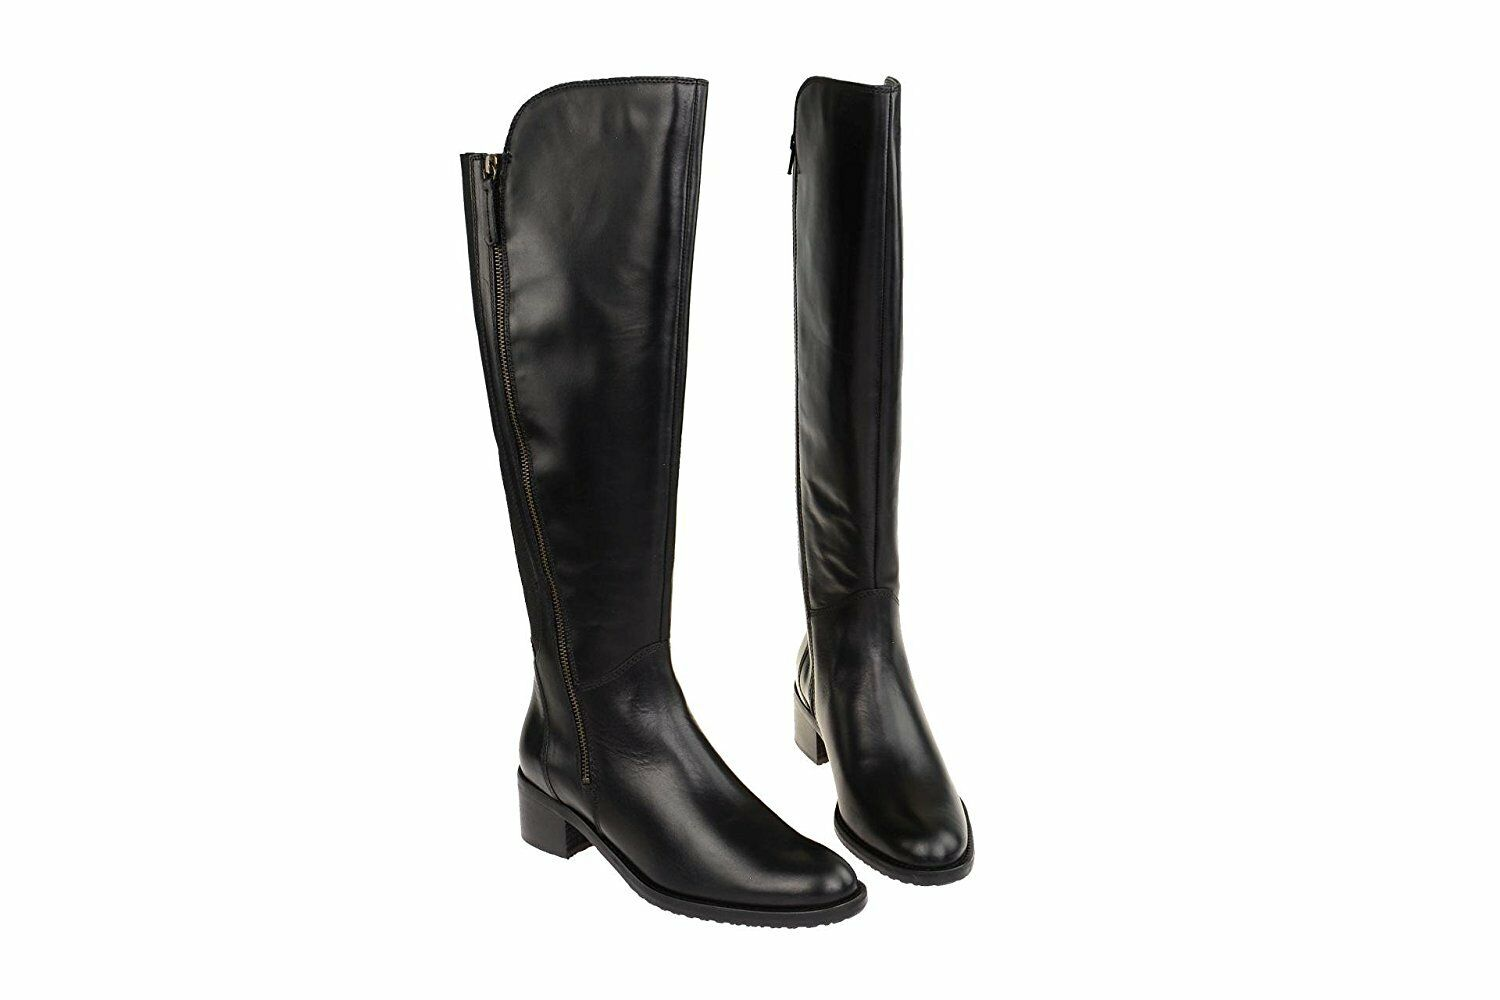 Clarks Ladies Knee-High Boots Valana Melpink Black Leather UK 5.5 5.5 5.5 Wide Fit   Leg 68d02b